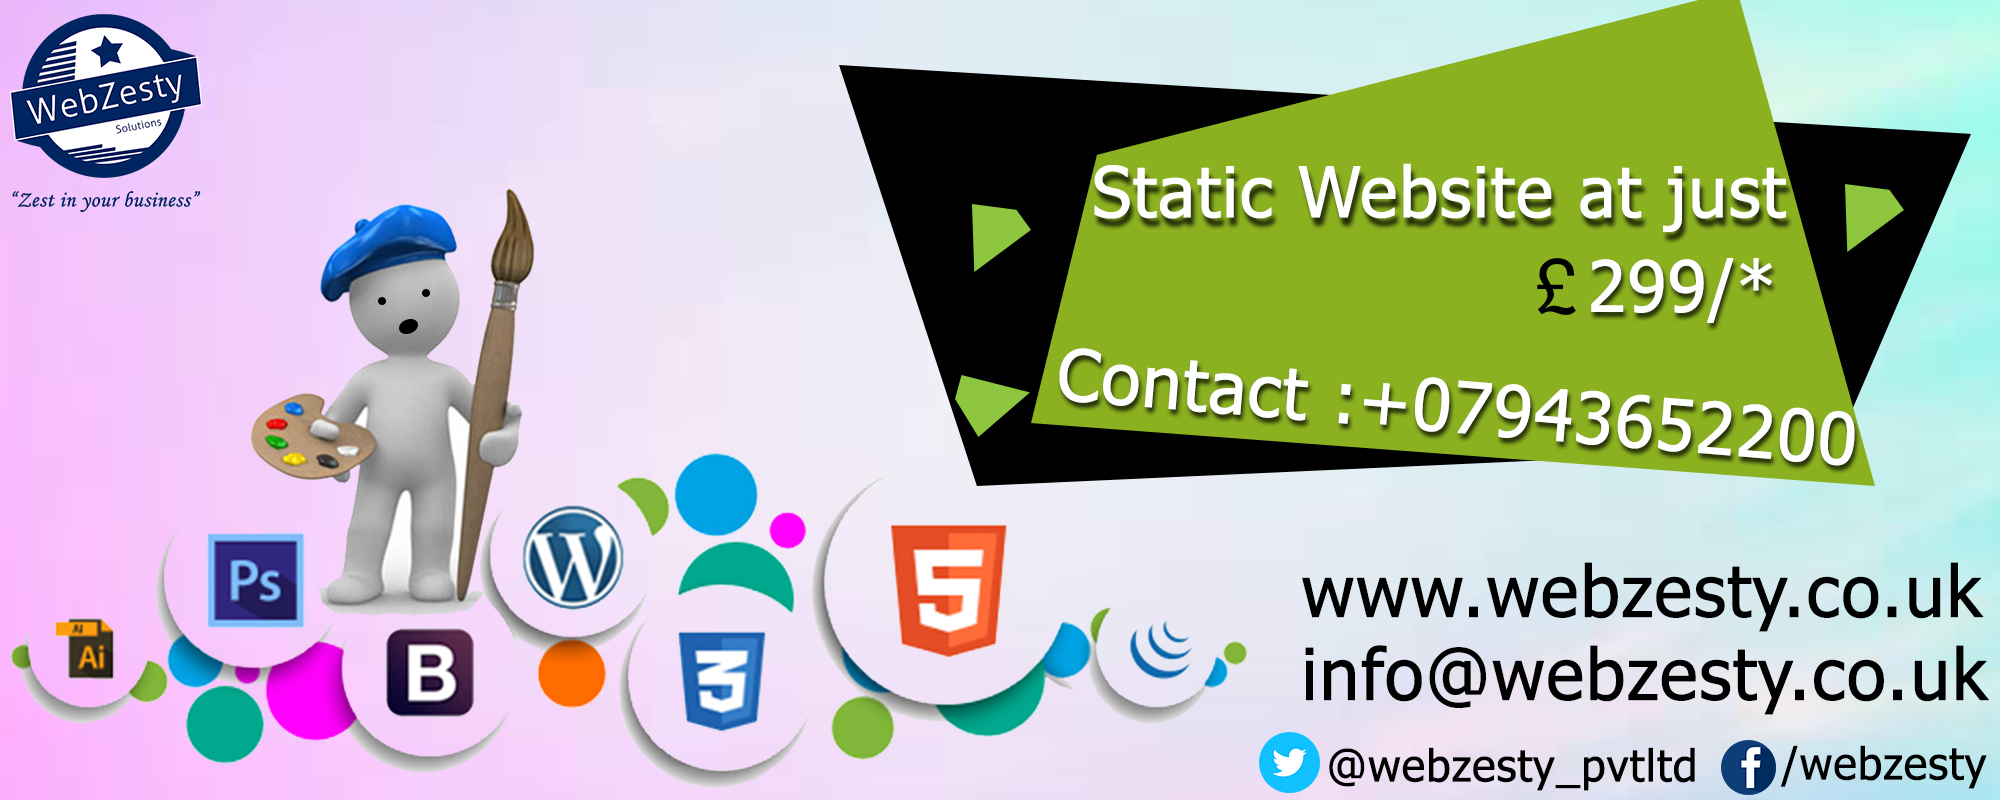 Webzesty Ltd